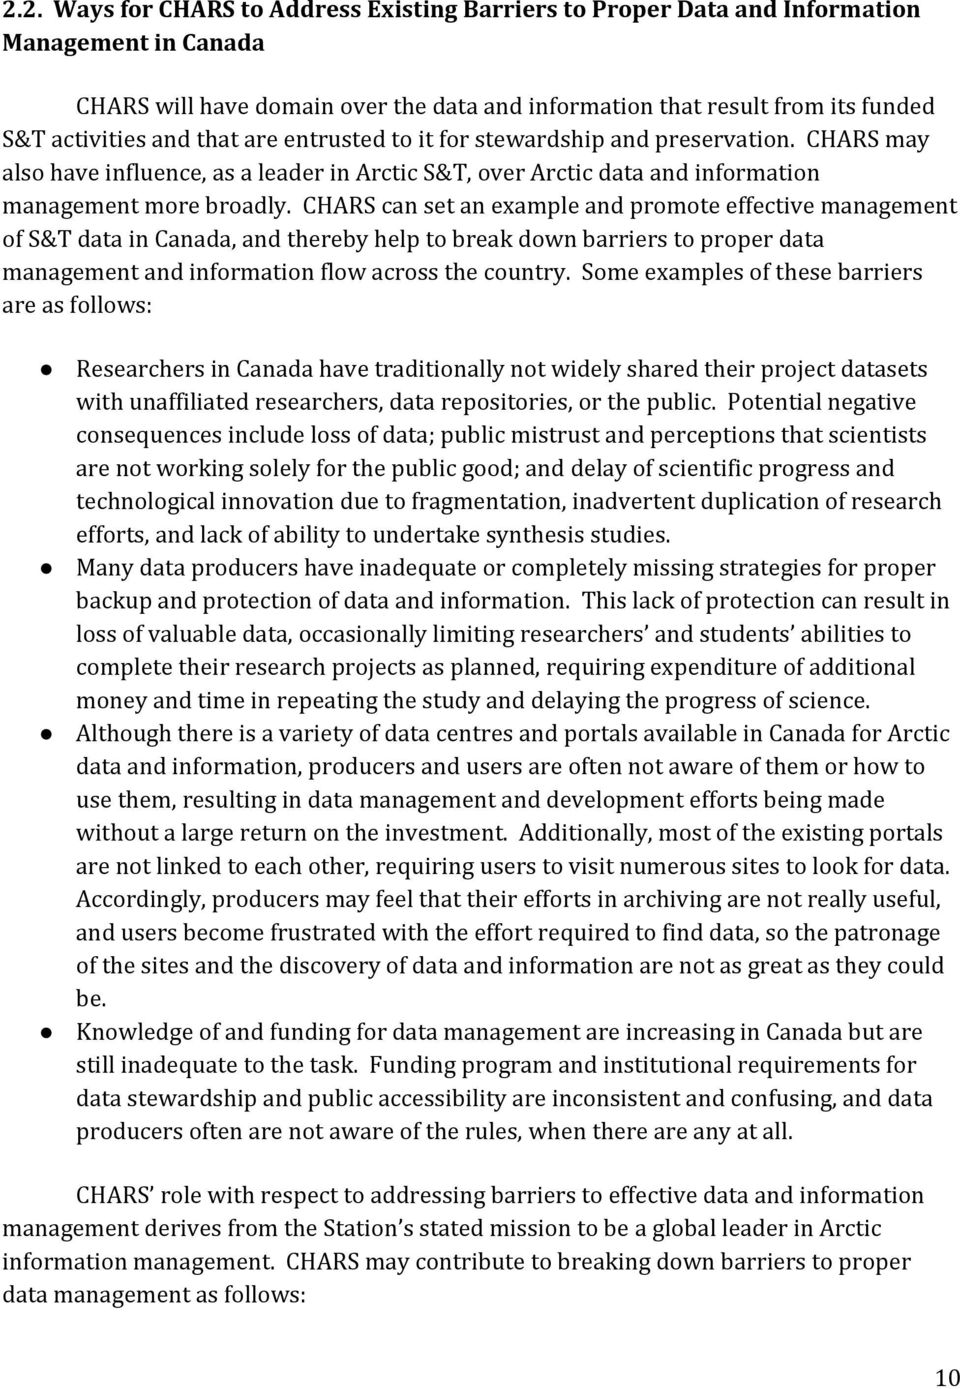 CHARS can set an example and promote effective management of S&T data in Canada, and thereby help to break down barriers to proper data management and information flow across the country.